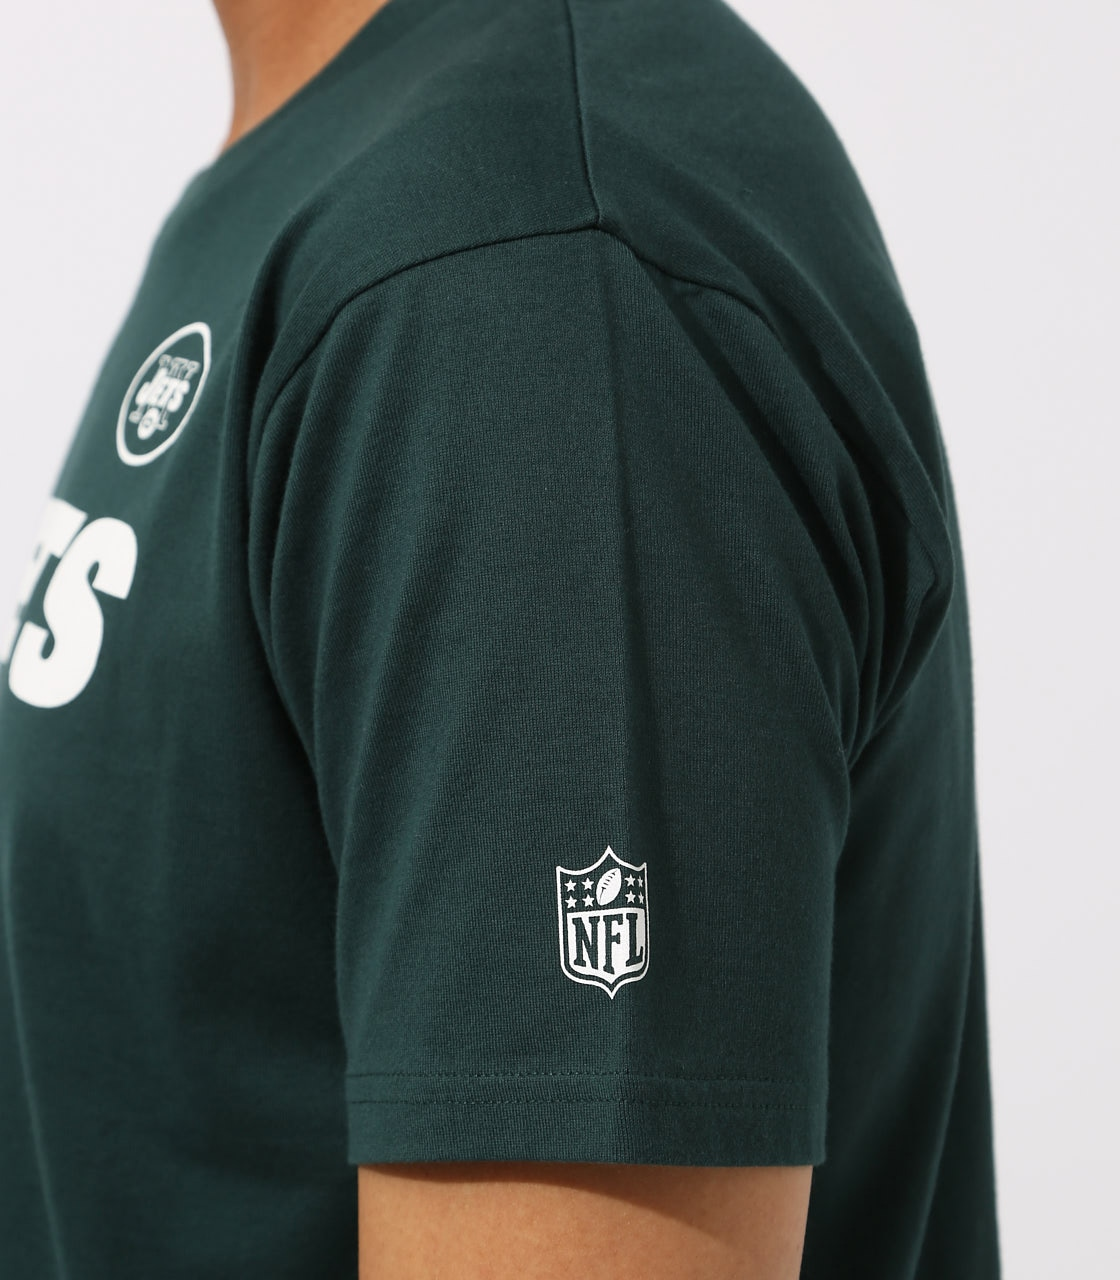 【AZUL BY MOUSSY】NFL JETS TEE 詳細画像 D/GRN 8